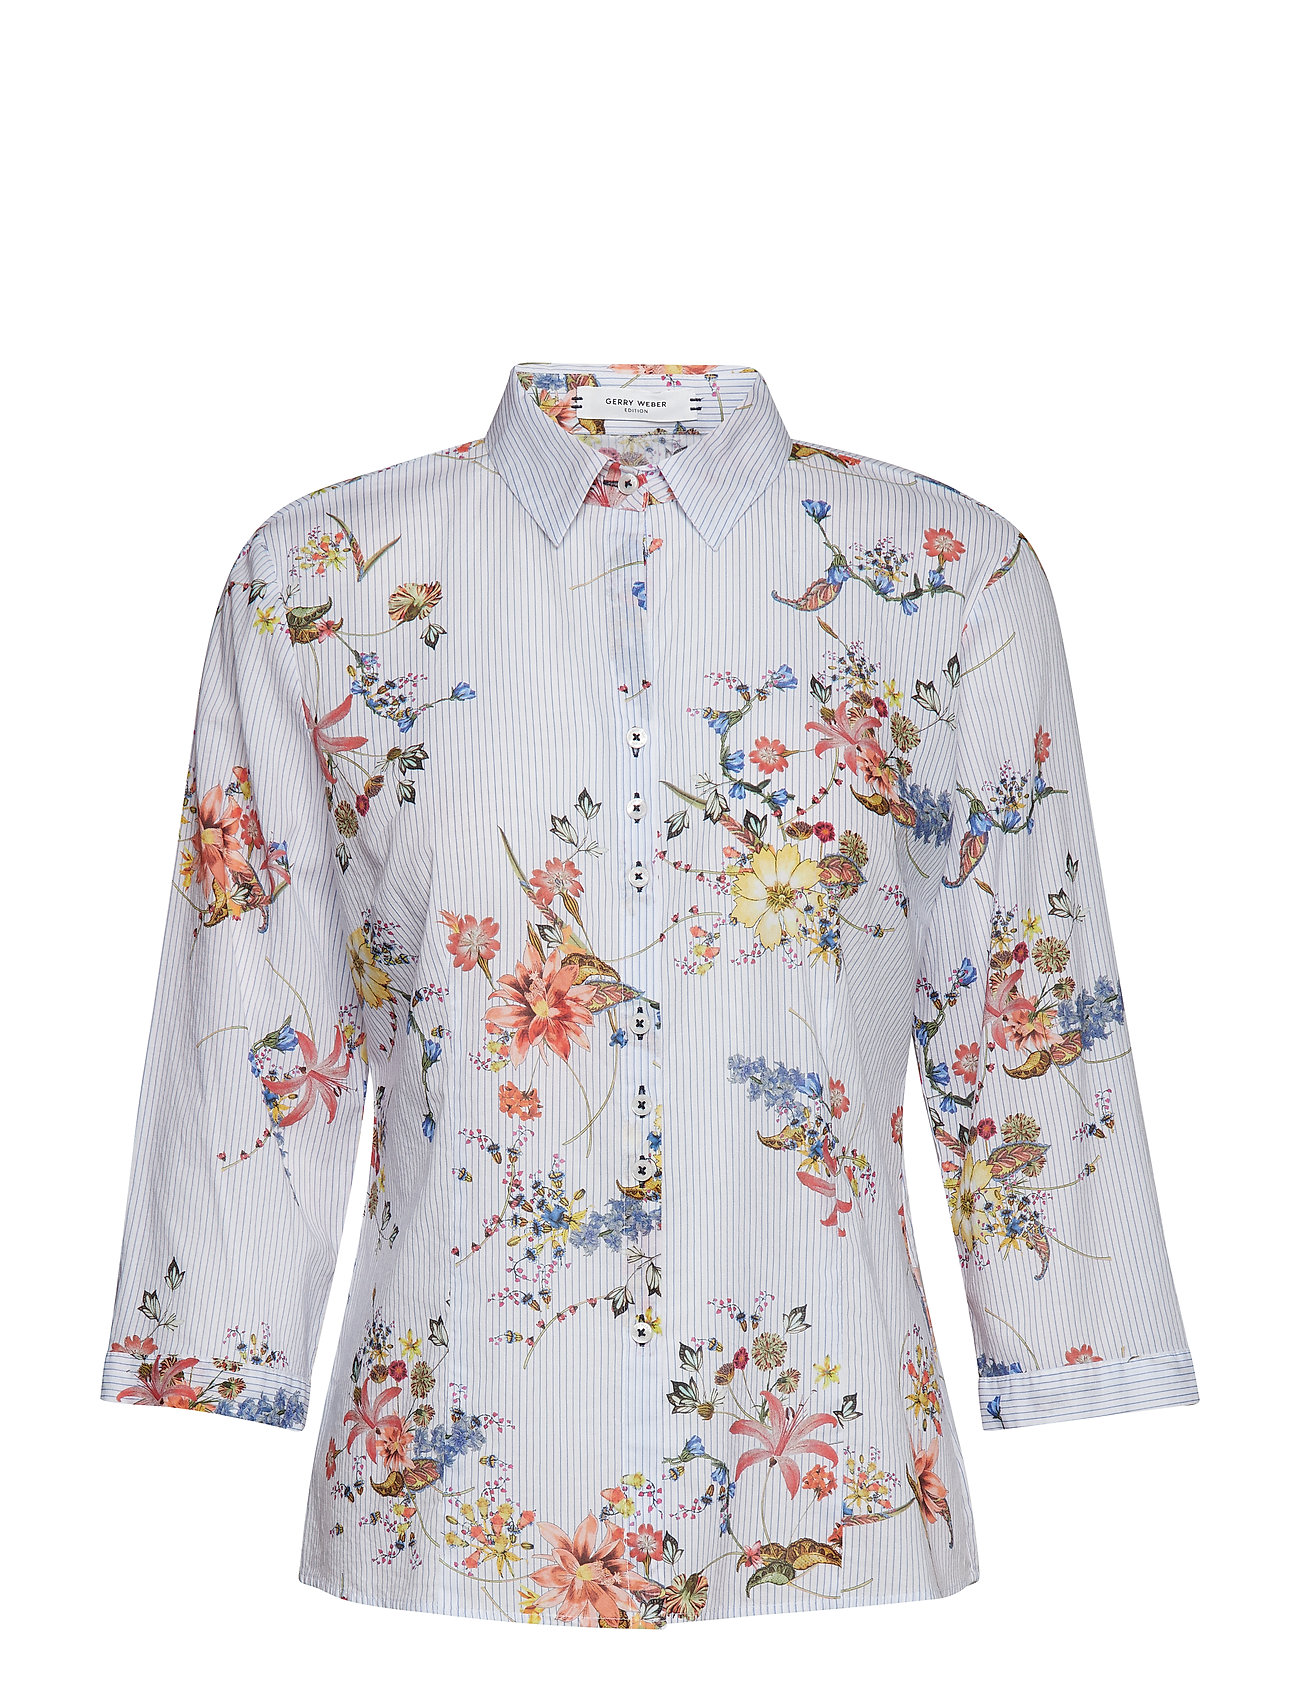 Gerry Weber Edition BLOUSE 3/4-SLEEVE - WHITE-BLUE-SUNSET RED